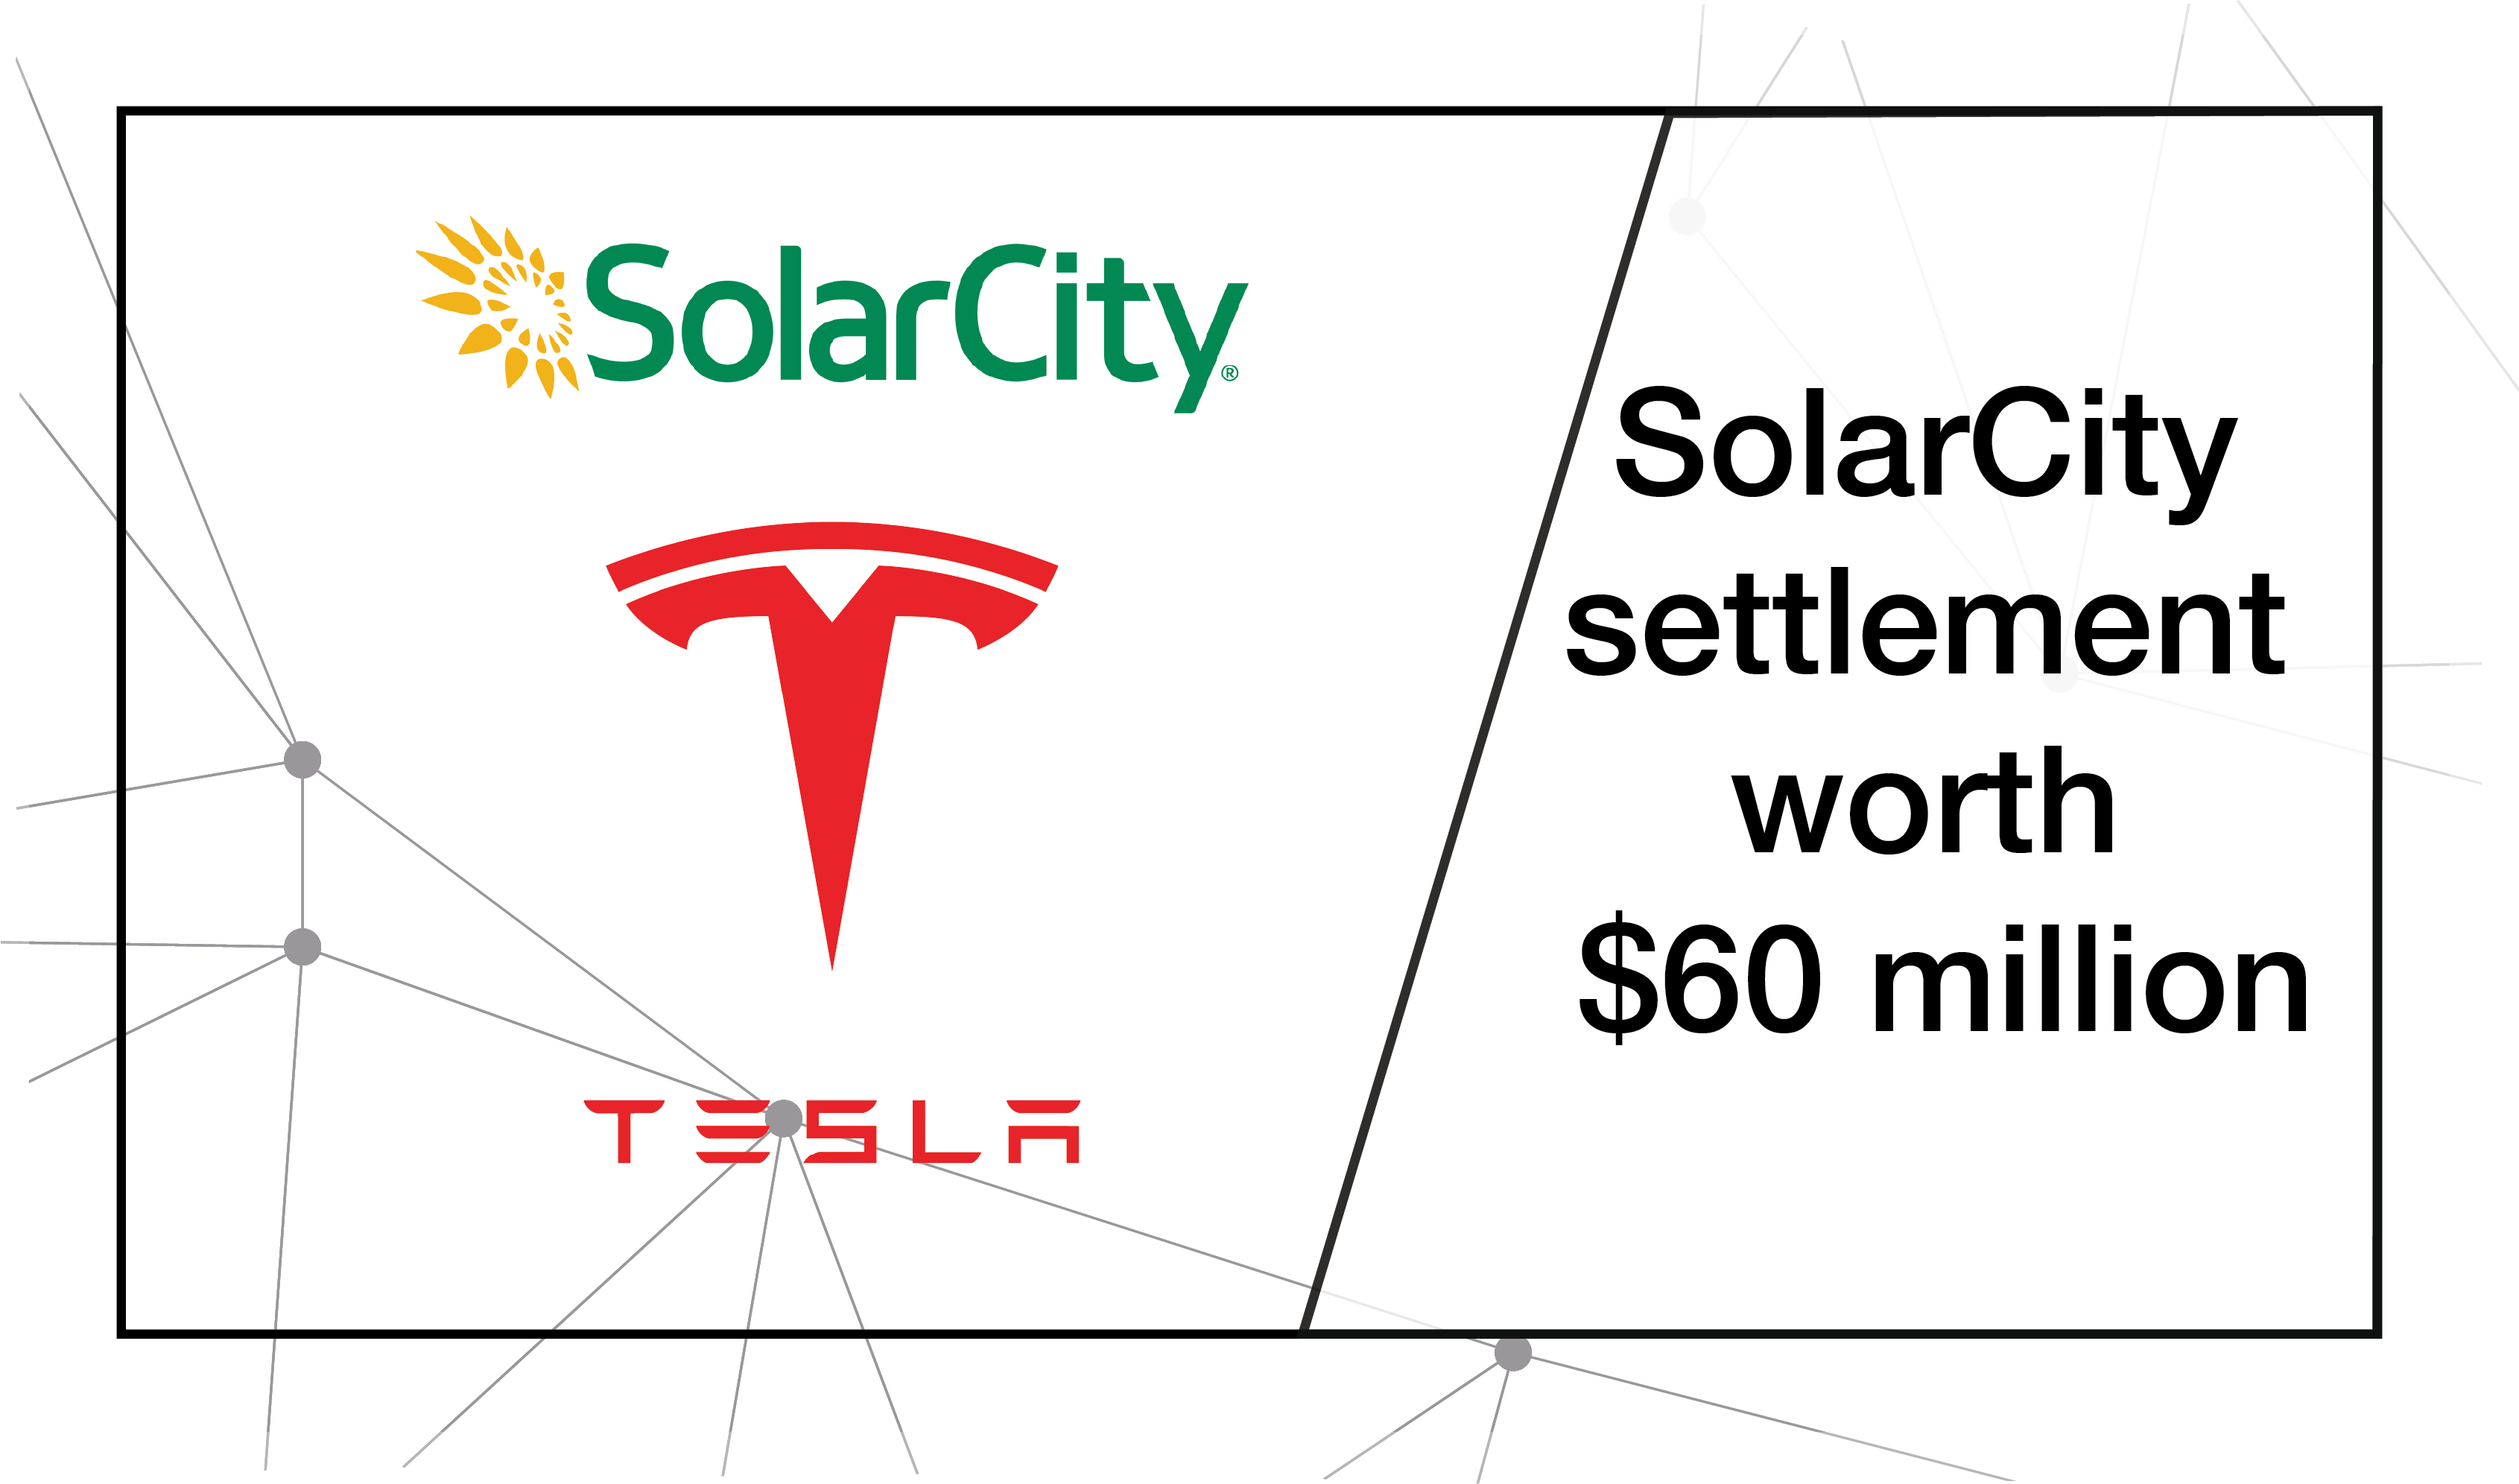 SolarCity settlement worth $60 million 01